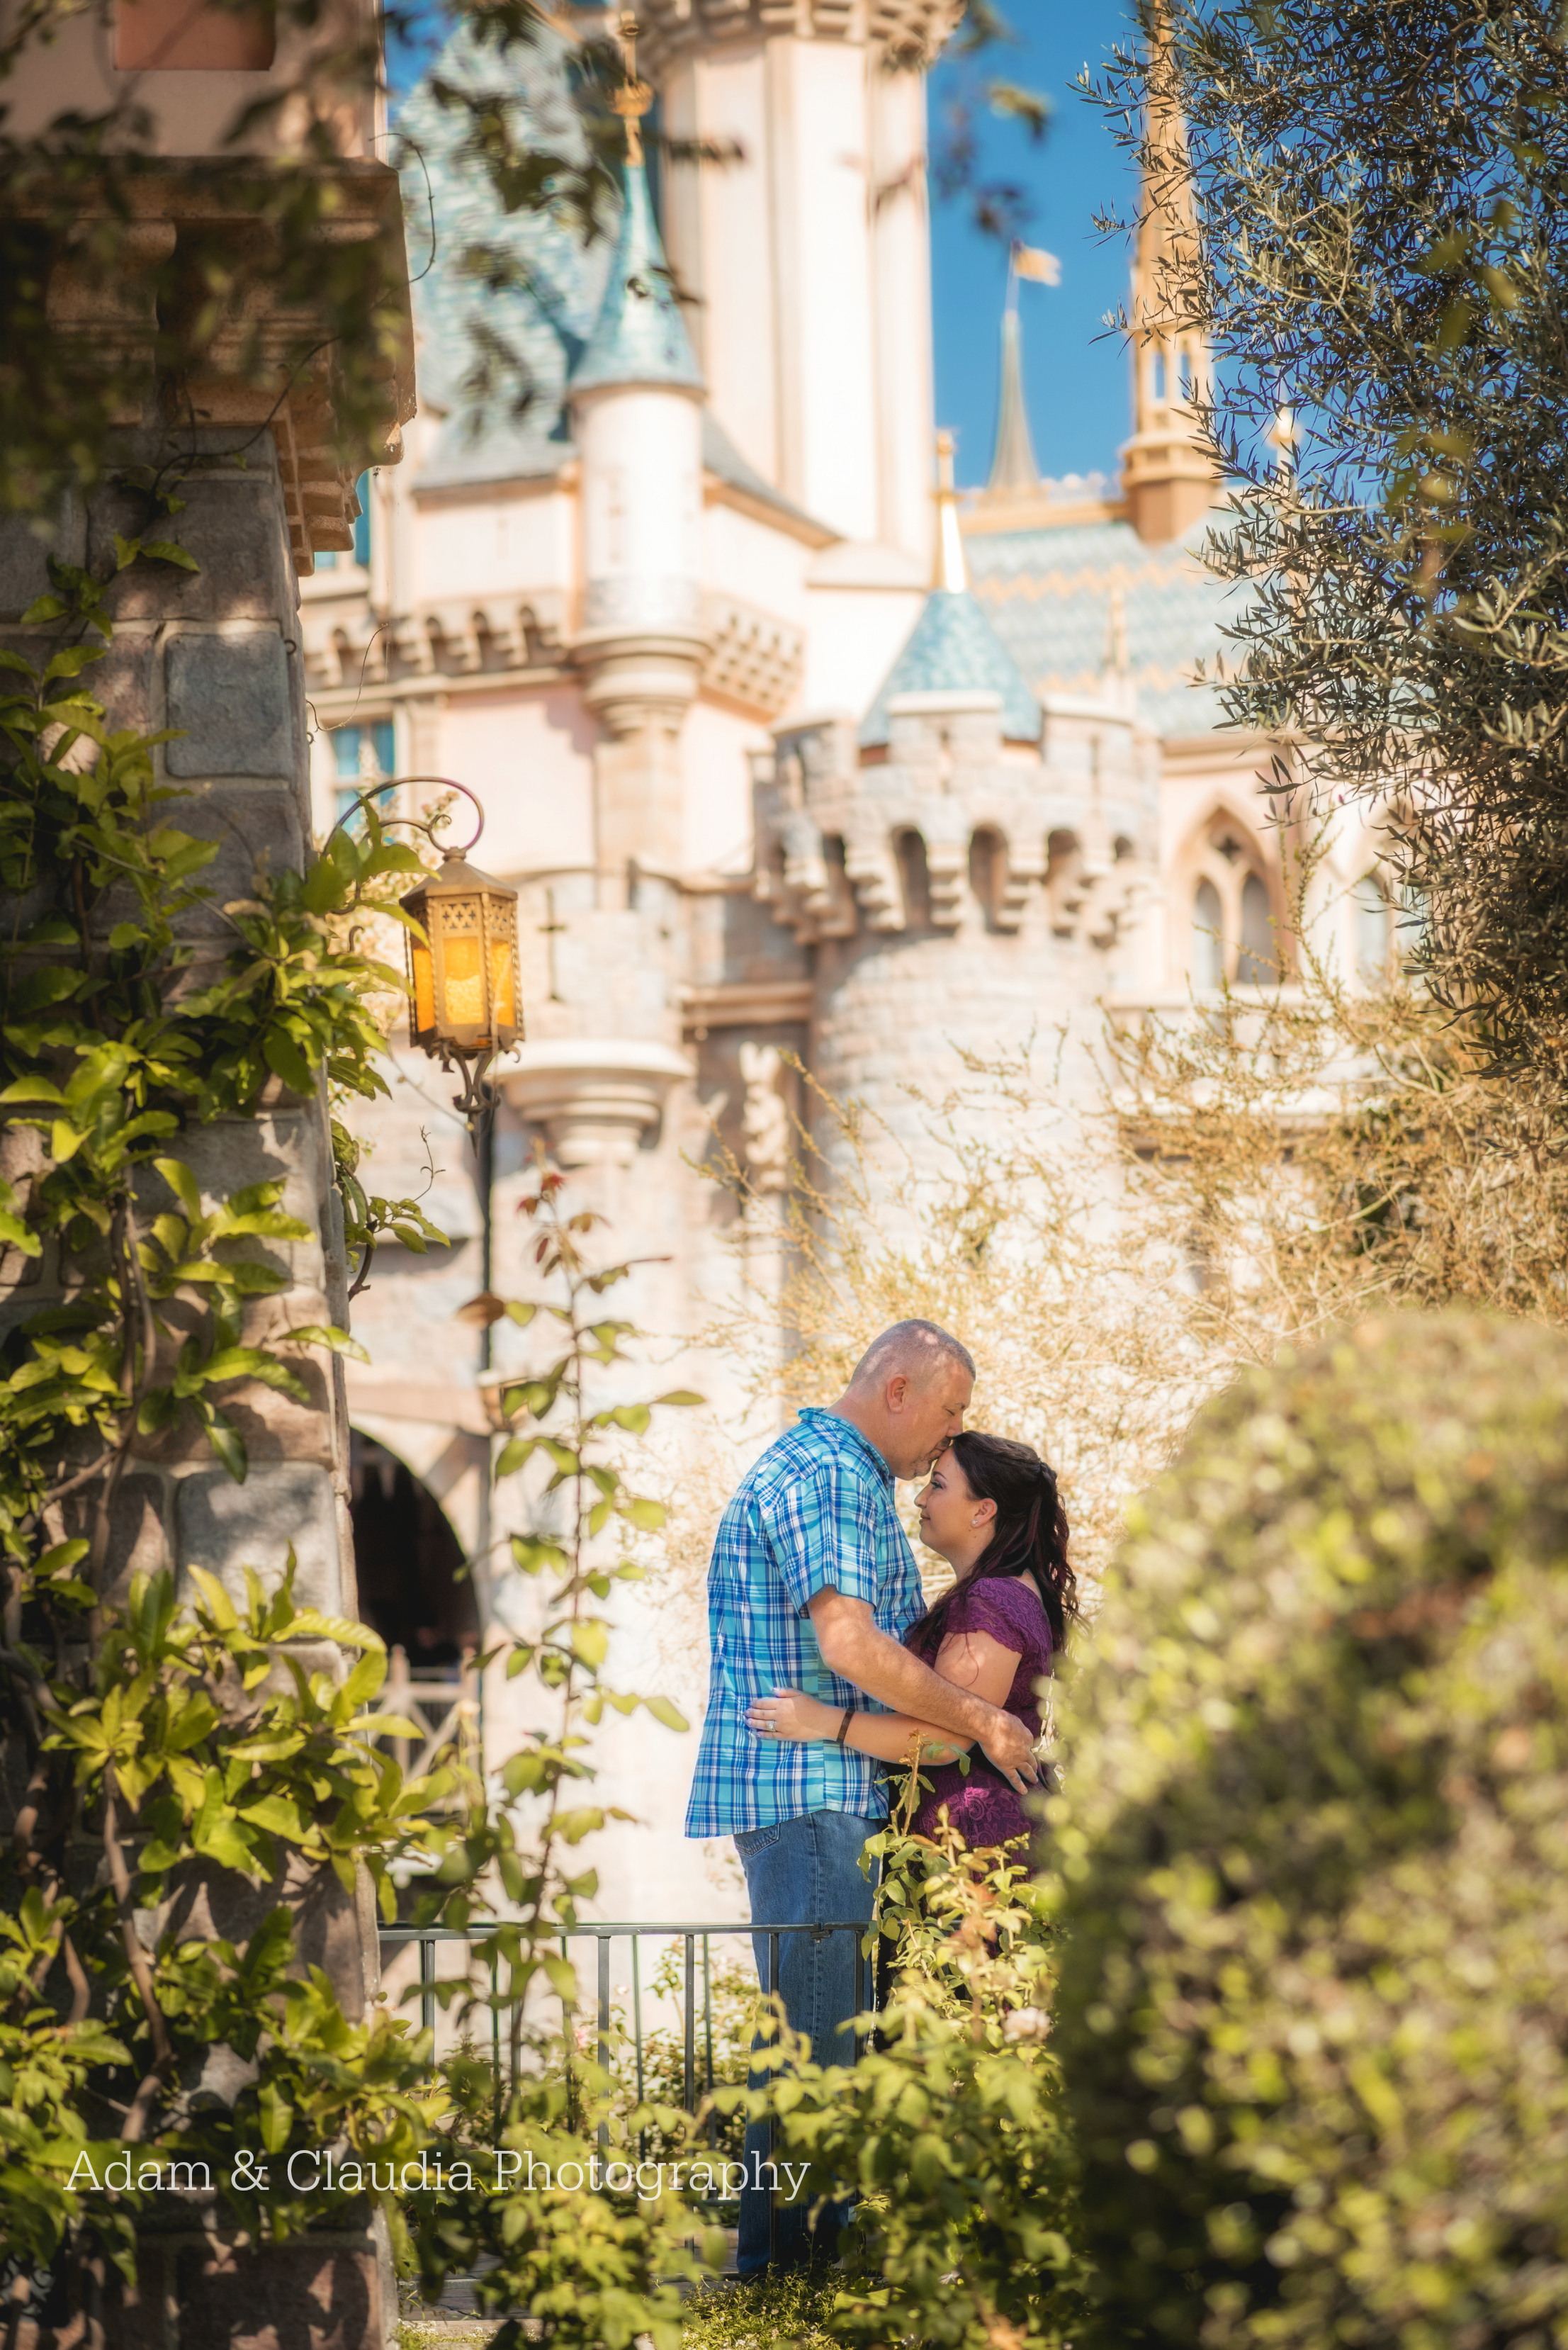 Engagement photo in front of Disney castle